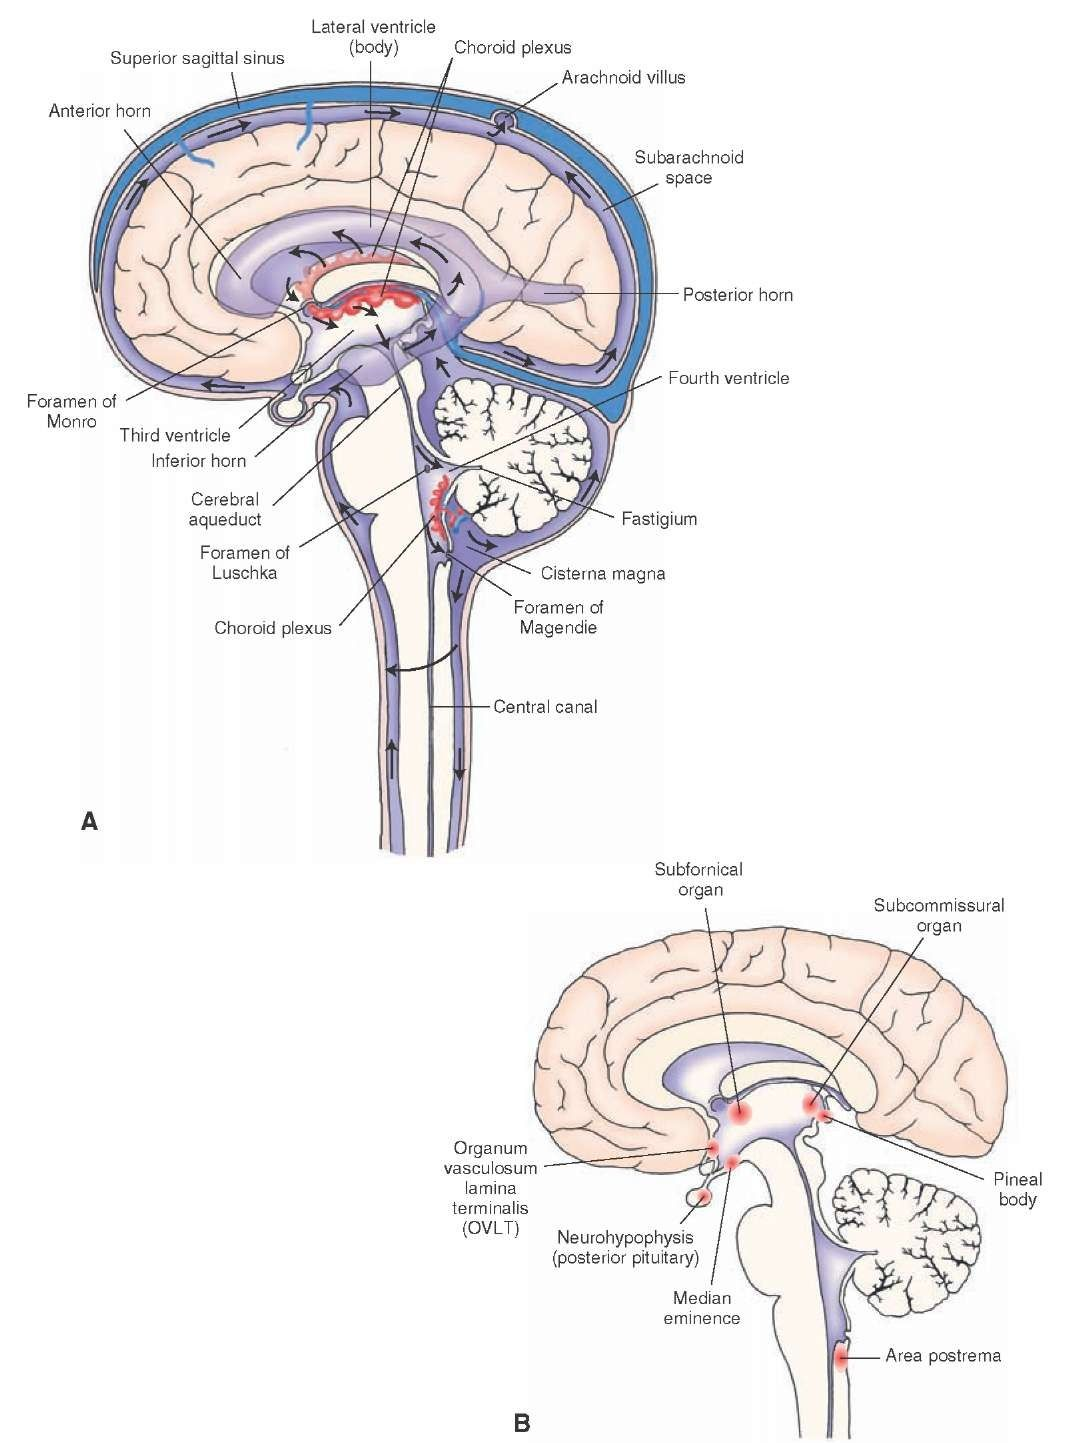 The Location And Connections Between The Ventricles Of The Brain A